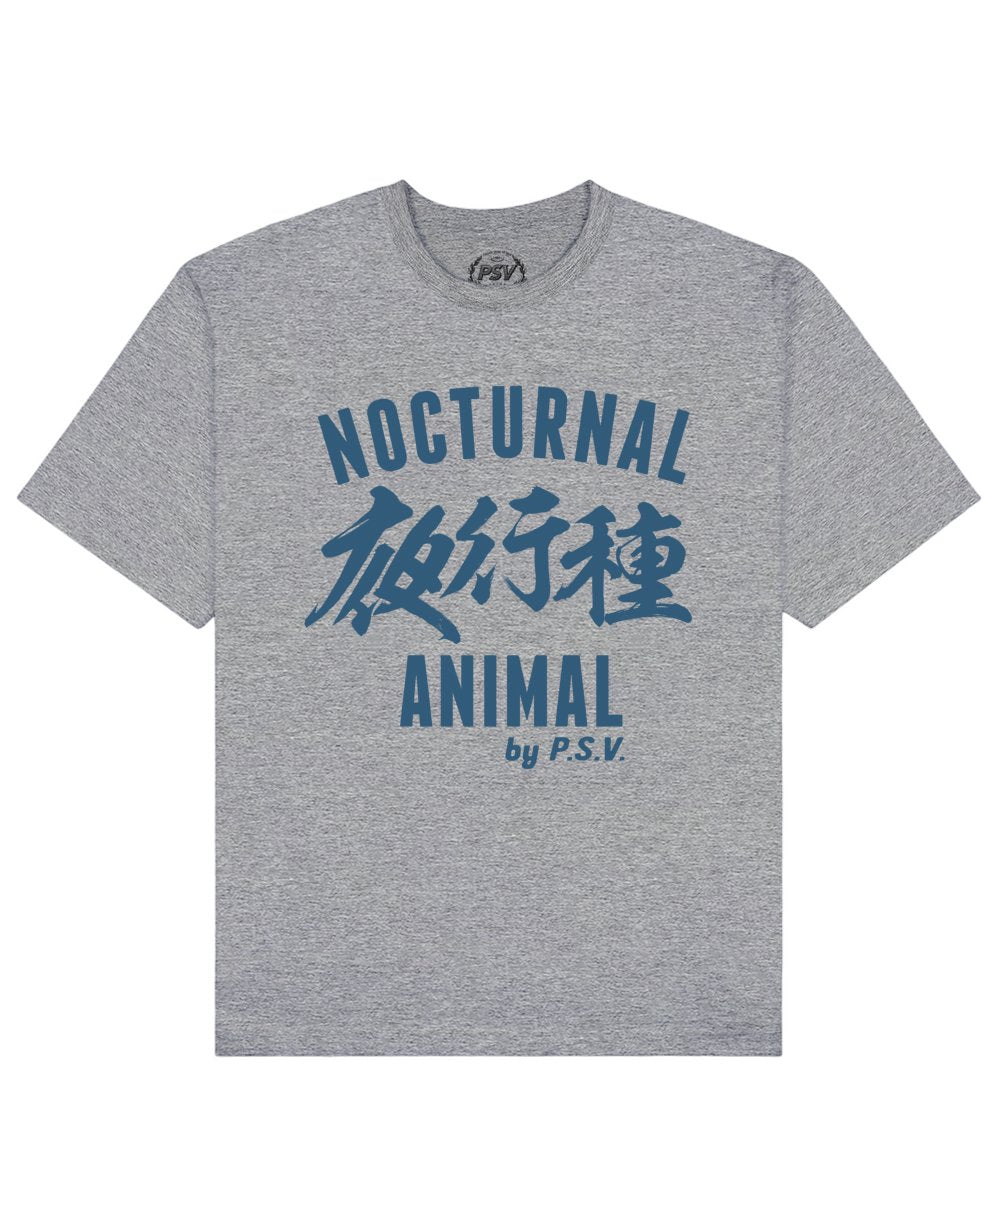 Nocturnal Animal Print T-Shirt in Gray - T-Shirts - PSV - BRANMA